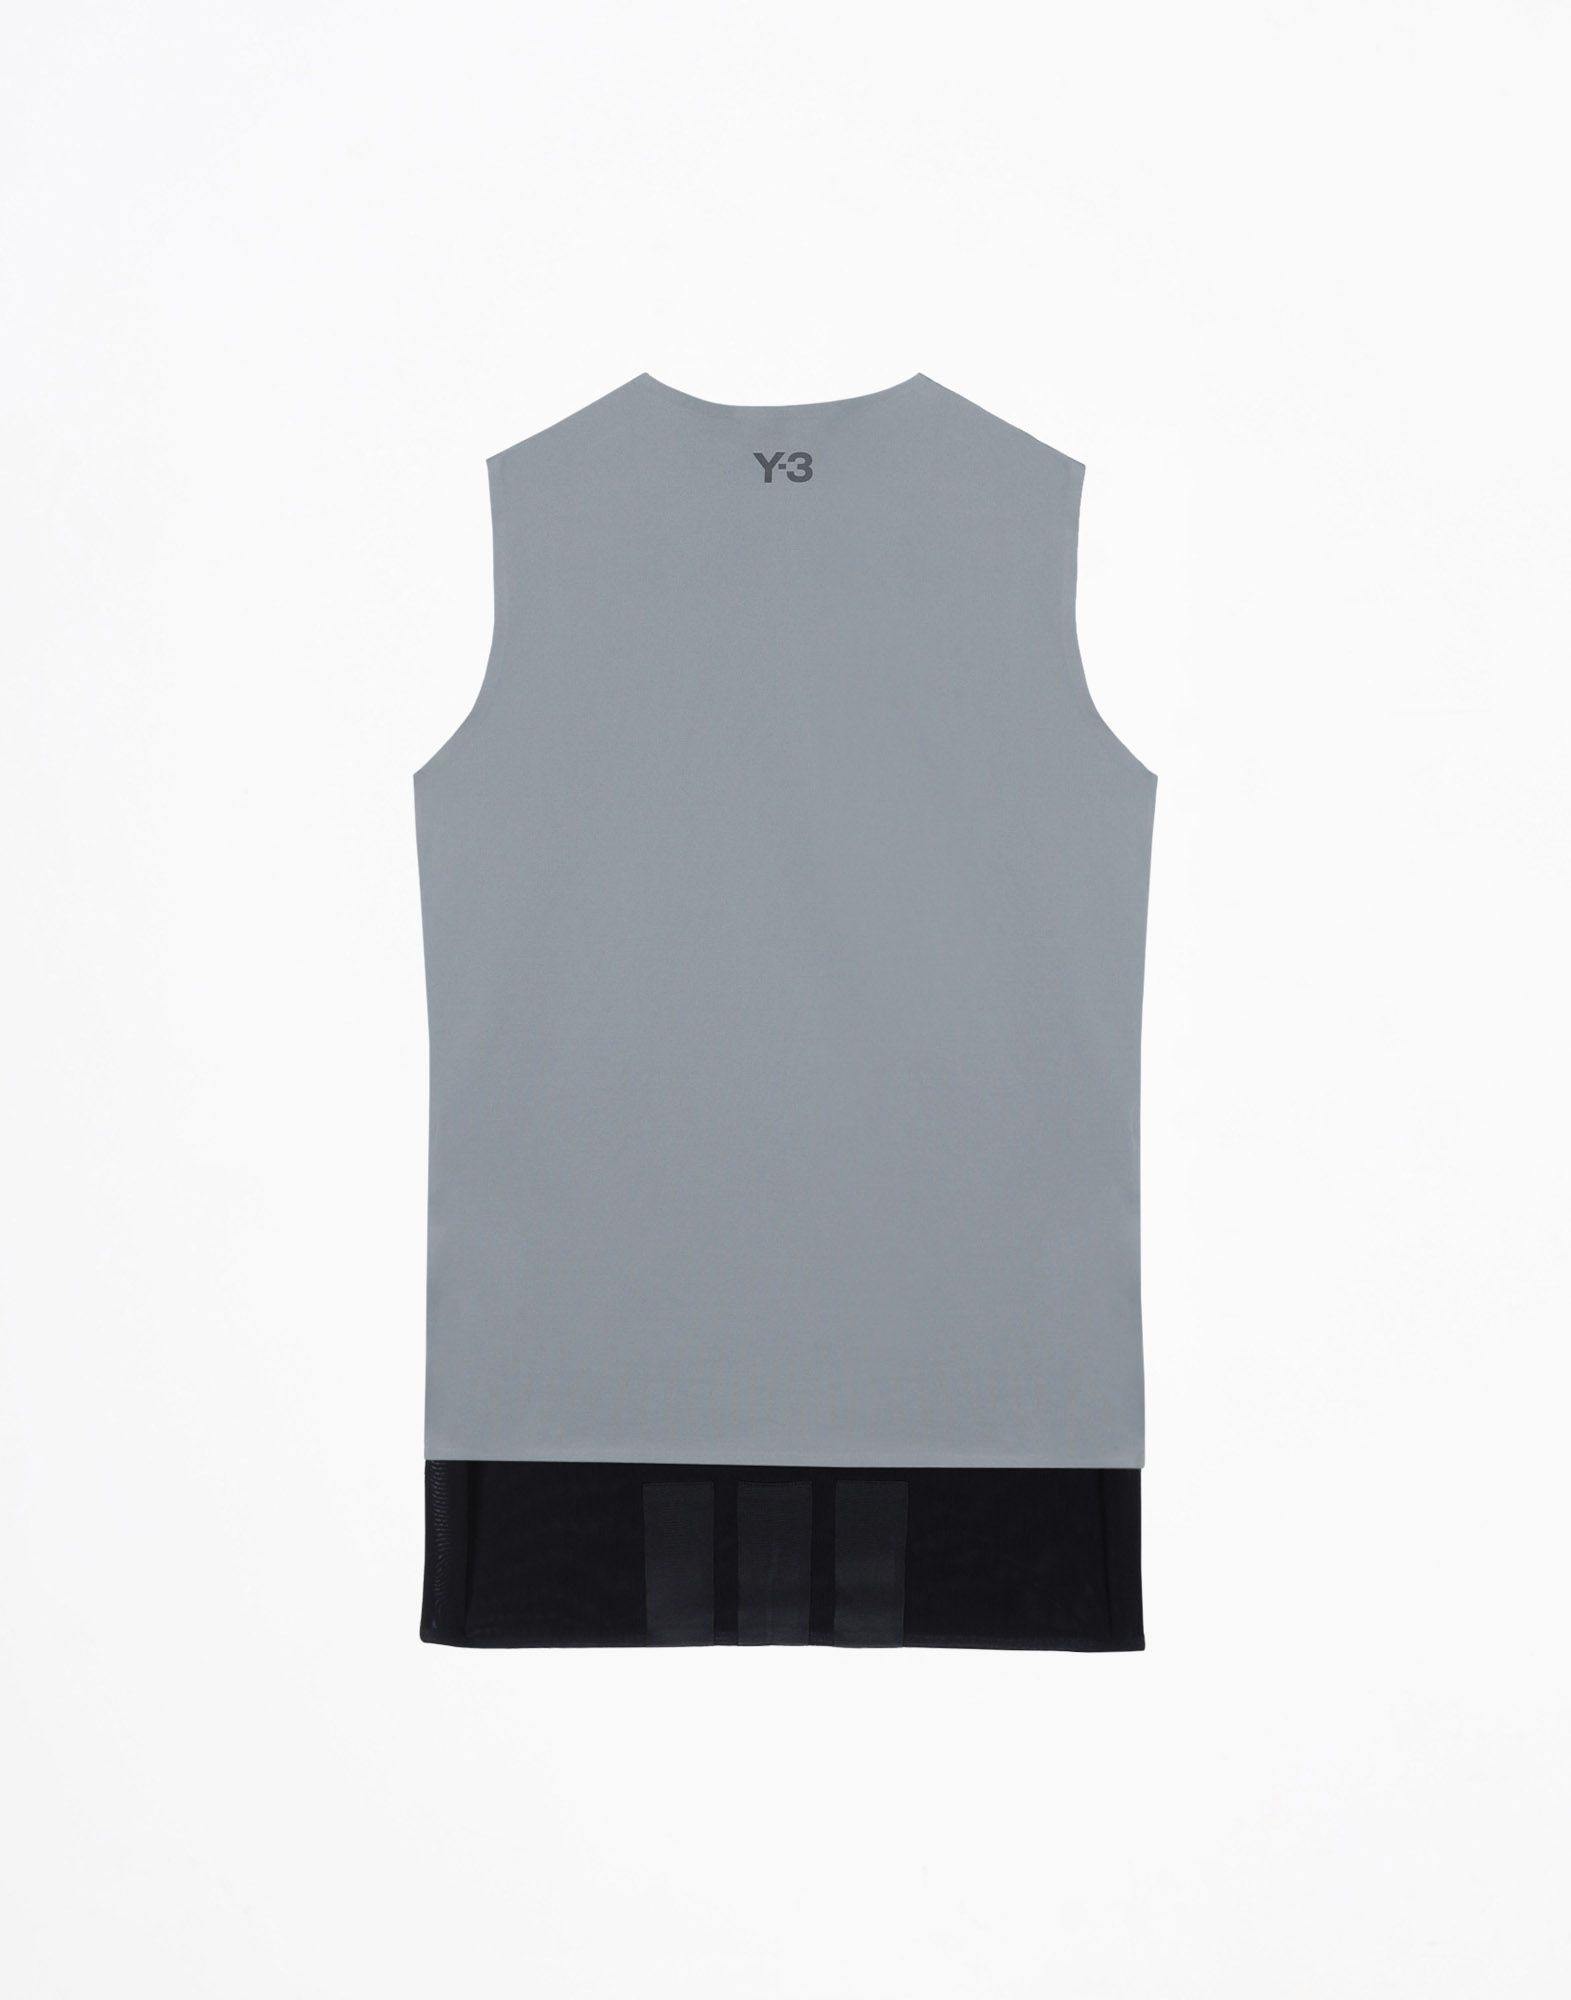 Y-3 LUX FT PURE TOP TEES & POLOS unisex Y-3 adidas